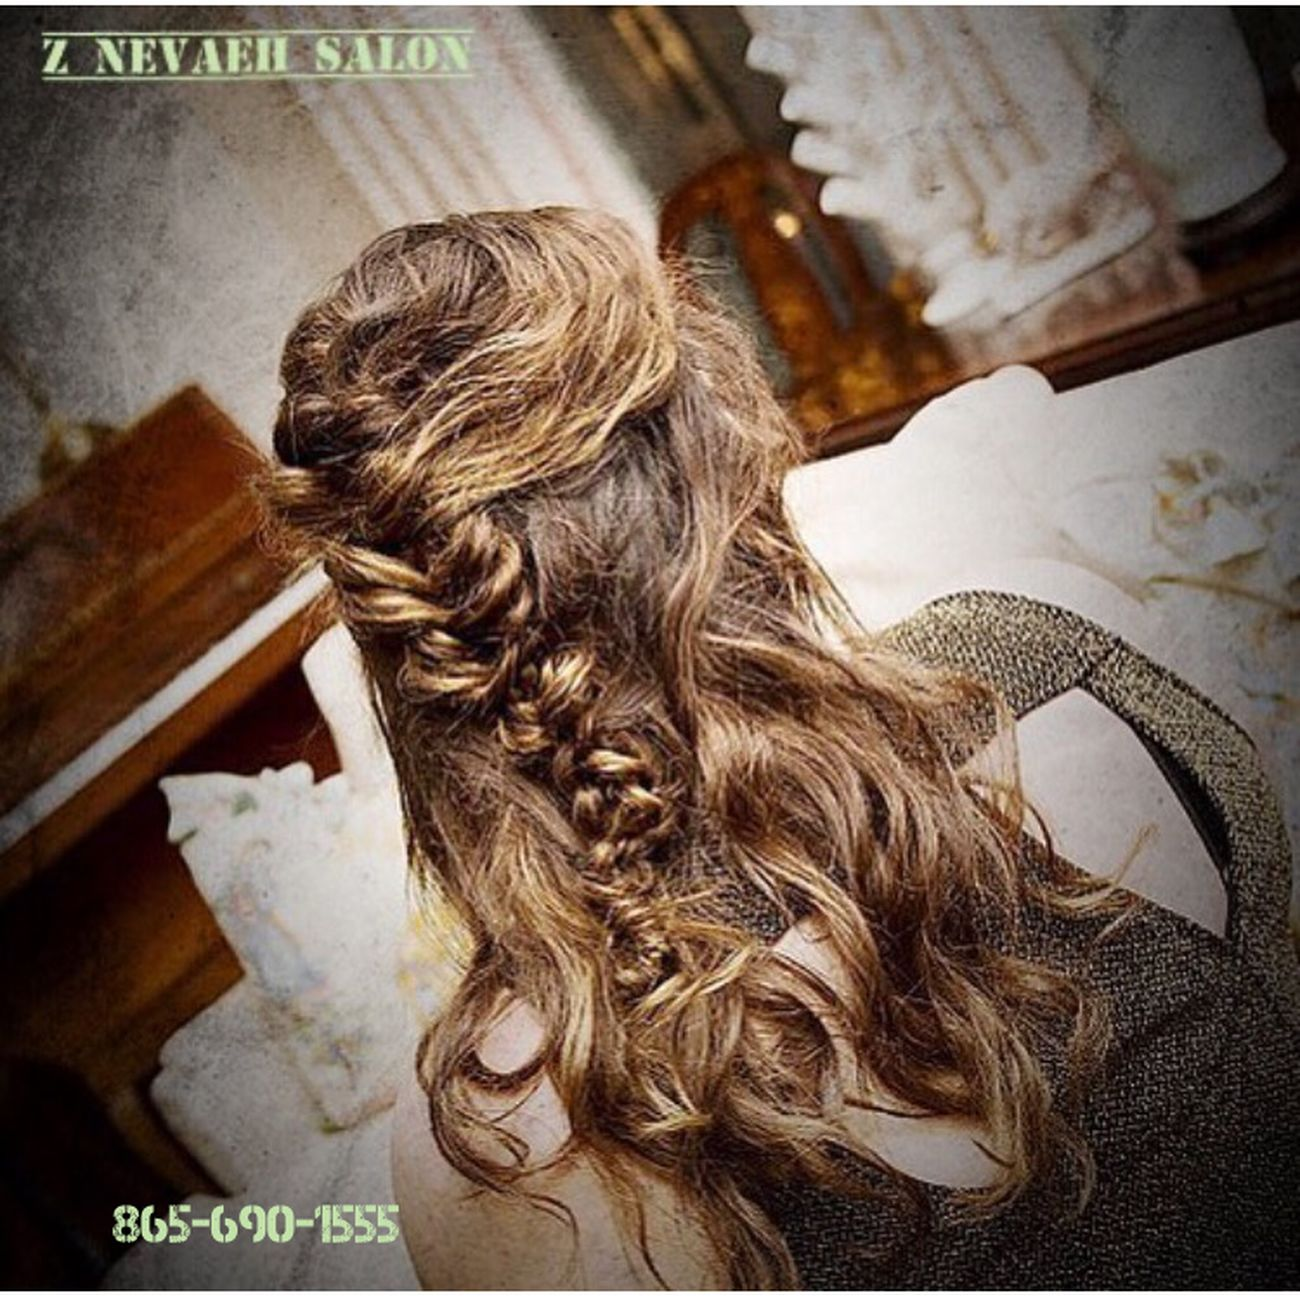 Texture, Curls & Fishtail Braids @znevaehsalon @lorealprofessionnel Check This Out Taking Photos Hair Long Hair Hairstyle Fashion Hair Eye4photography # Photooftheday Fashion #style #stylish #love #TagsForLikes #me #cute #photooftheday #nails #hair #beauty #beautiful #instagood #instafashion # Hairtrends L'Oreal Professionnel Z Nevaeh Salon Knoxvillesalon Salonlife Lorealprofessionnelsalon Knoxville Salon Tecniart @znevaehsalon @lorealprofessionnel Festivalwaves Balayage .#curls Fishtail Braid